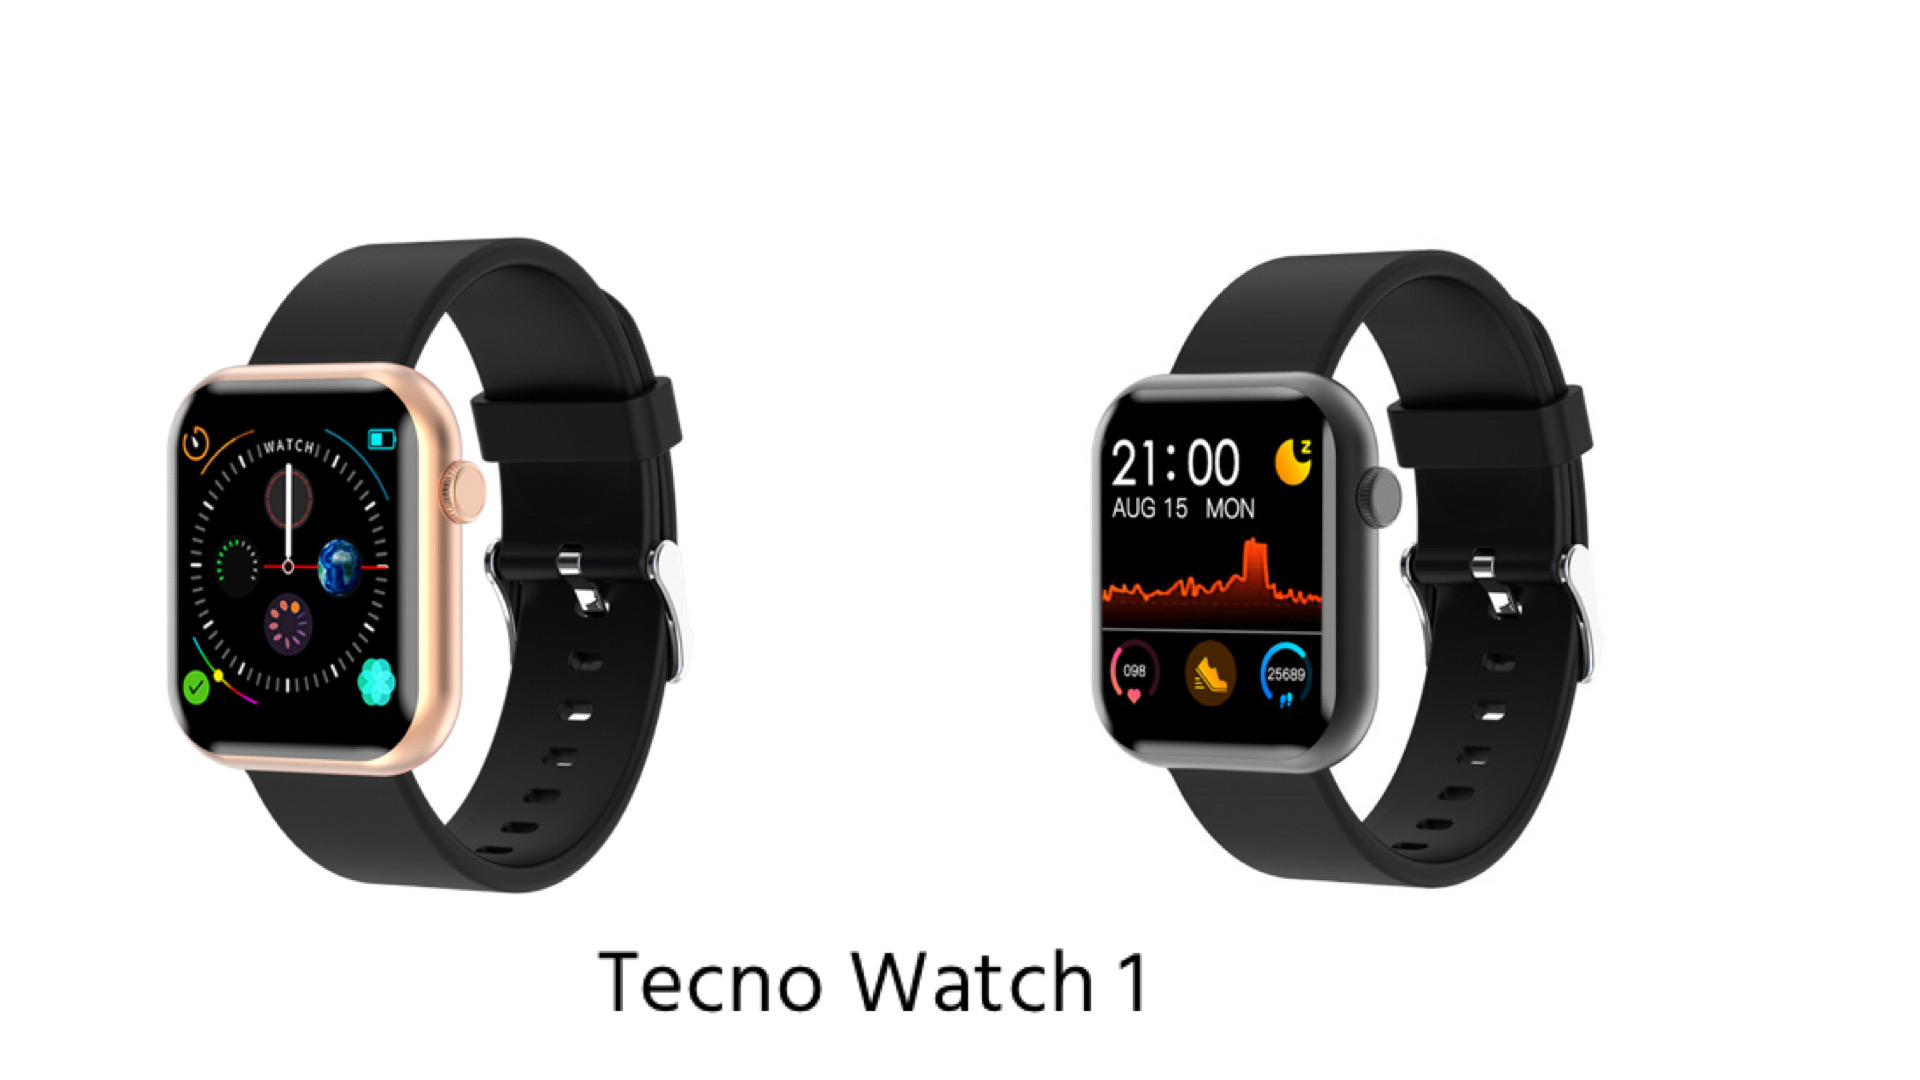 Tecno Watch 1 : Specs and Price in Nigeria 1